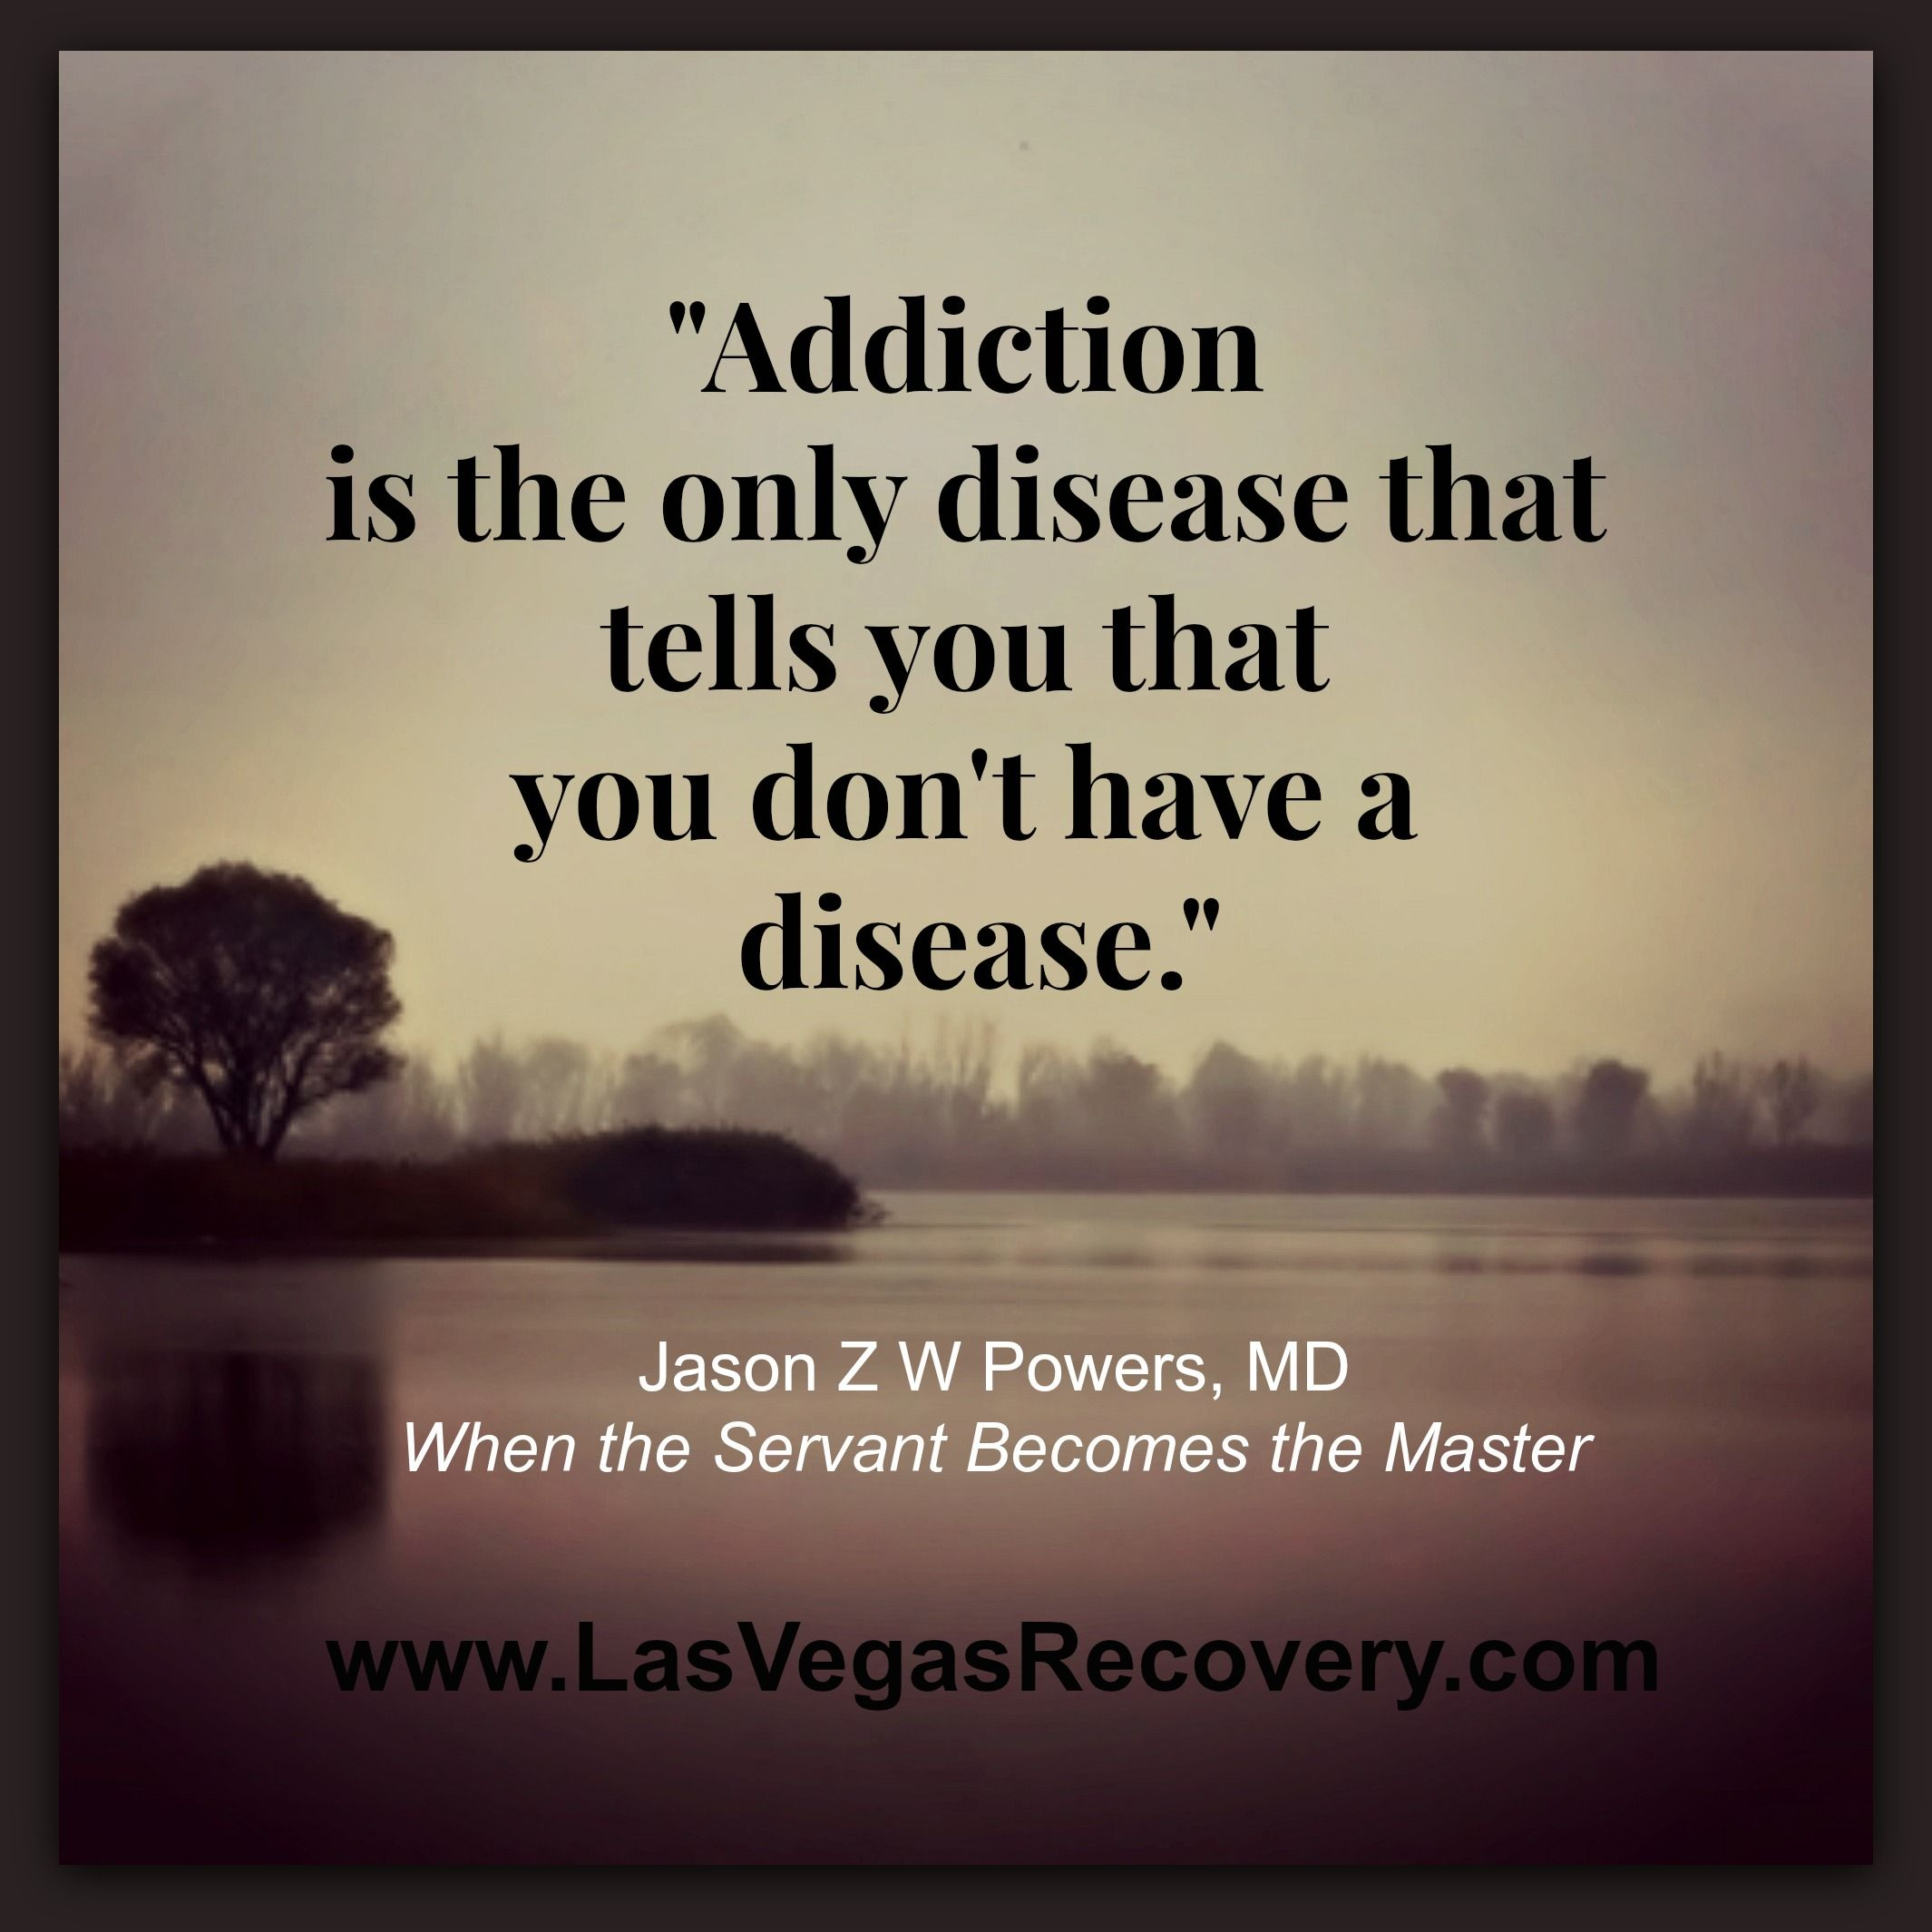 Quotes About Drug Addiction: Addiction Is The Only Disease That Tells You That You Don